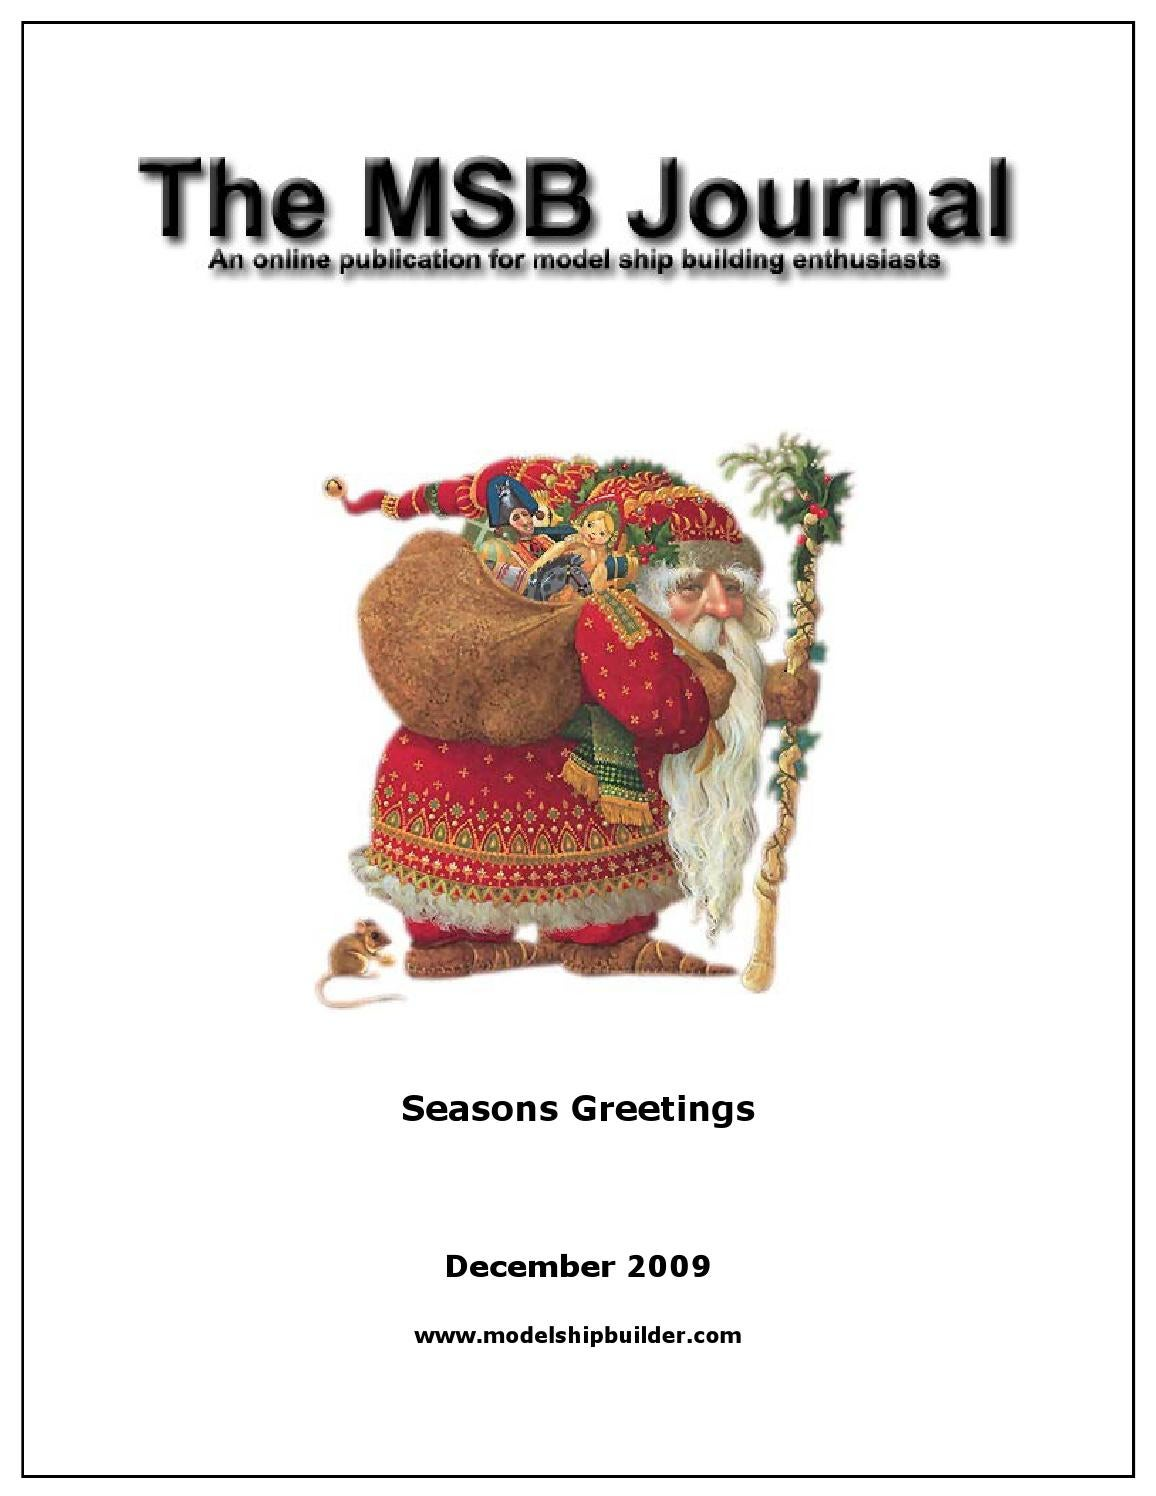 The msb journal december 2009 by msb journal issuu publicscrutiny Image collections